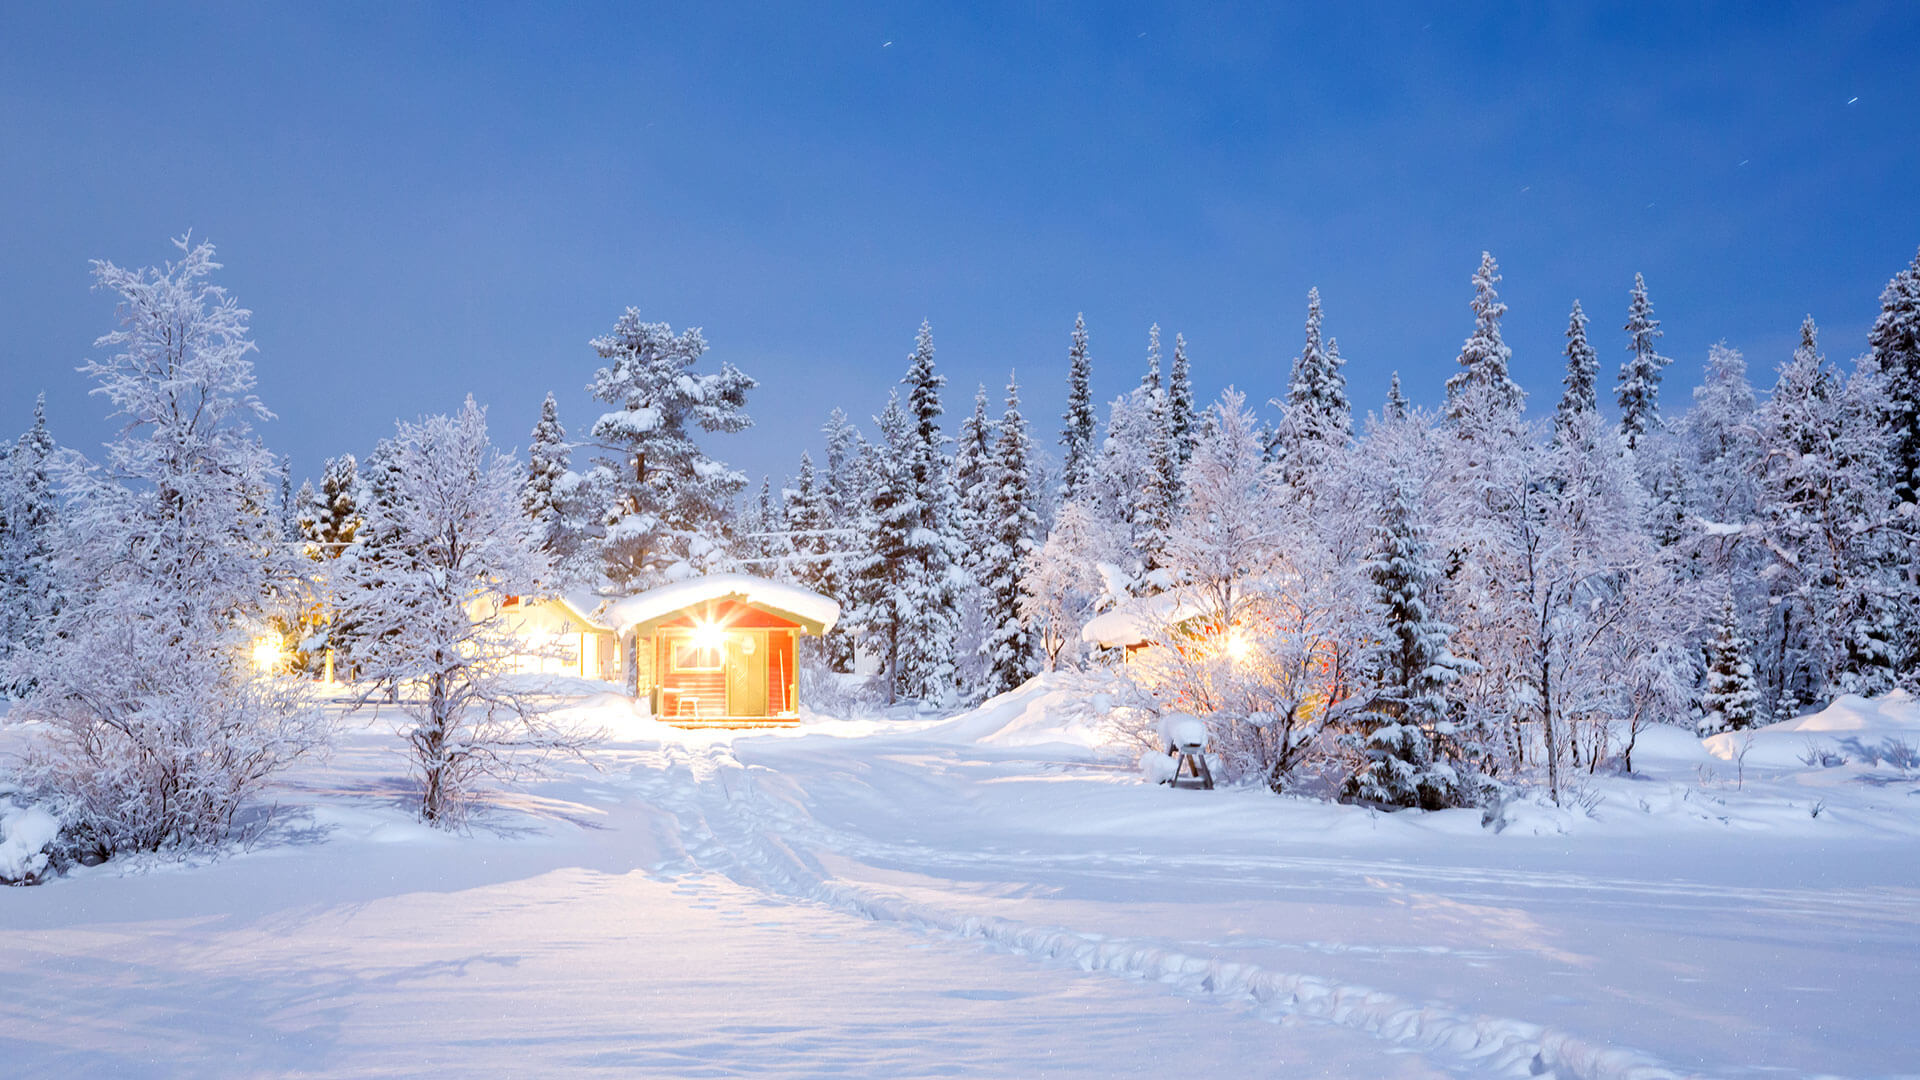 Non-stop from London, UK to the Arctic Circle in Finland for only £67 roundtrip (Feb dates)